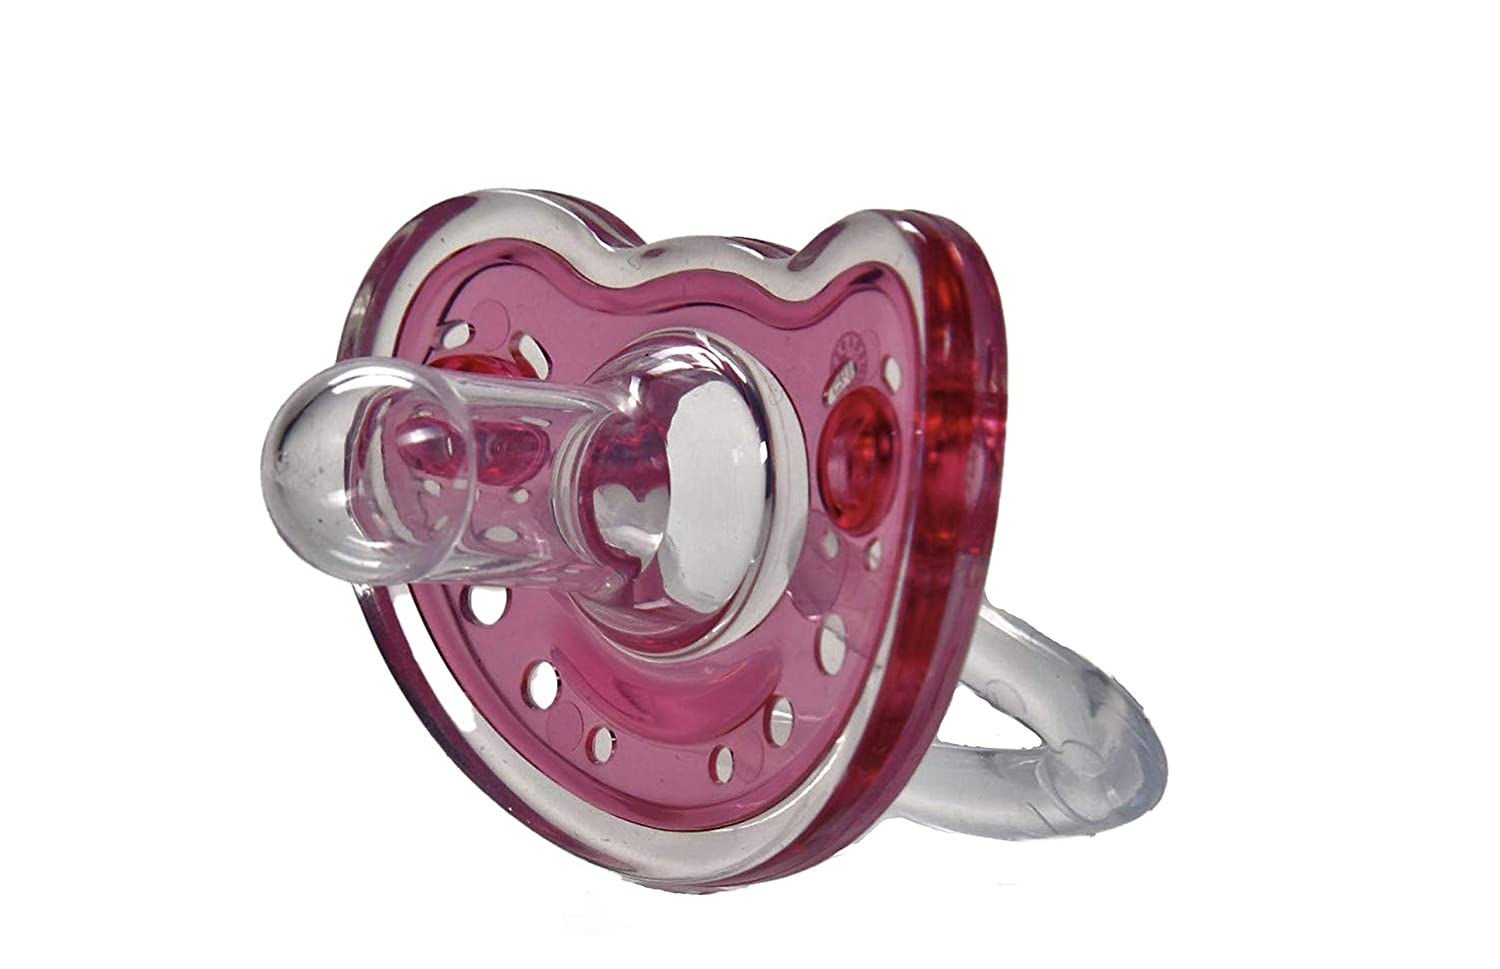 Sweetie Silicone Detroit Mall Pacifier Refuser Soother 2 Pink Overseas parallel import regular item Count